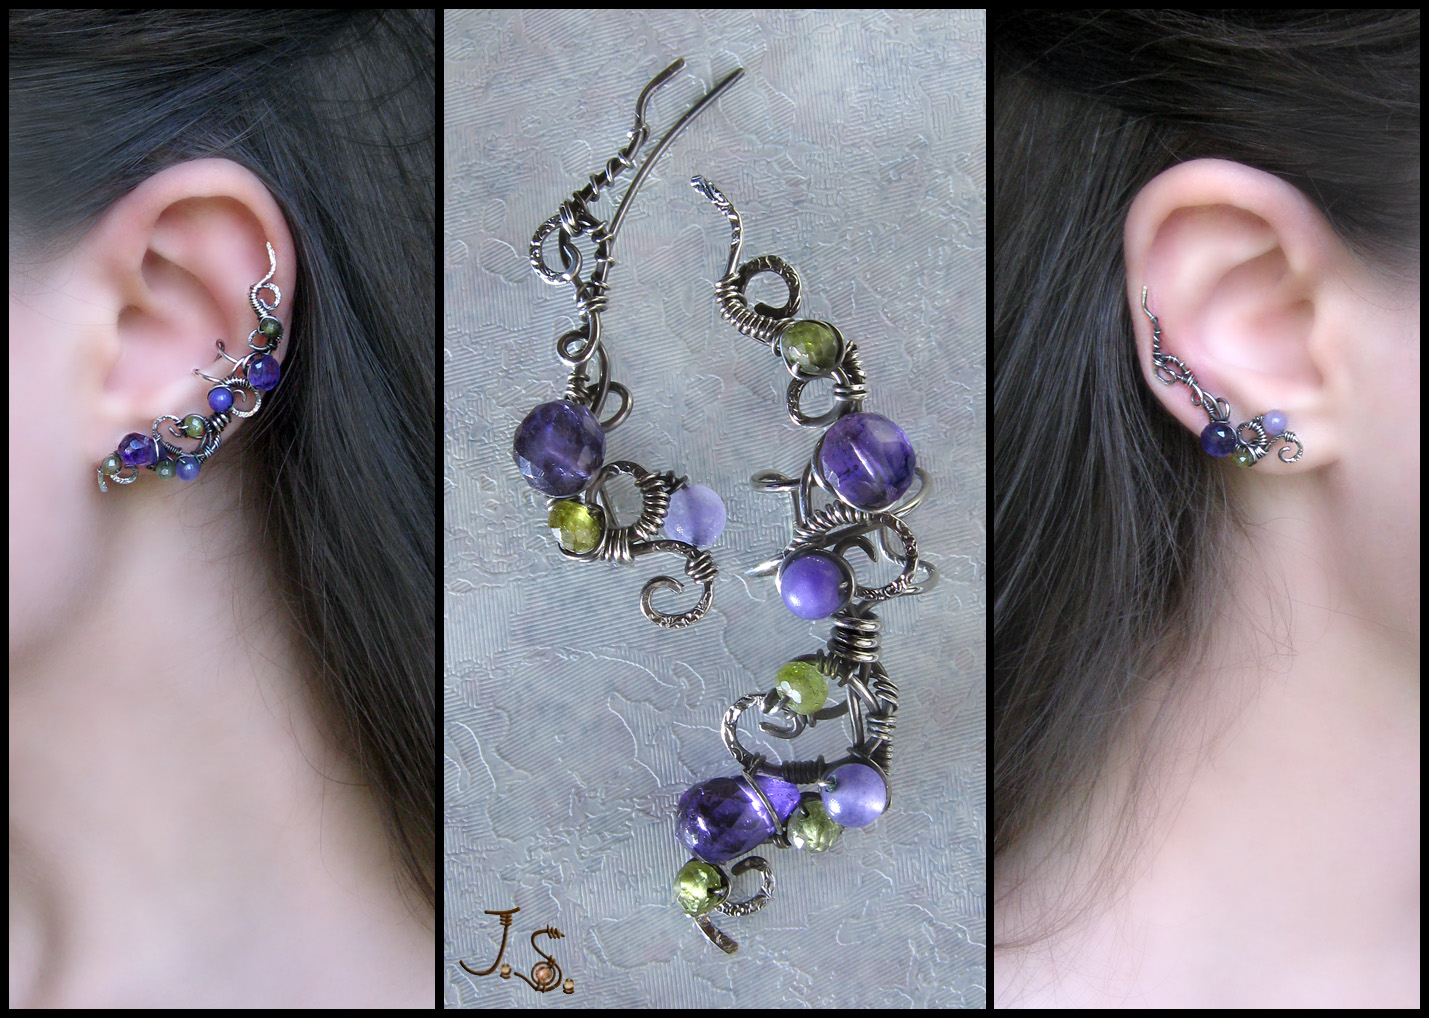 Violets near stream silver ear cuff and ear pin by JSjewelry